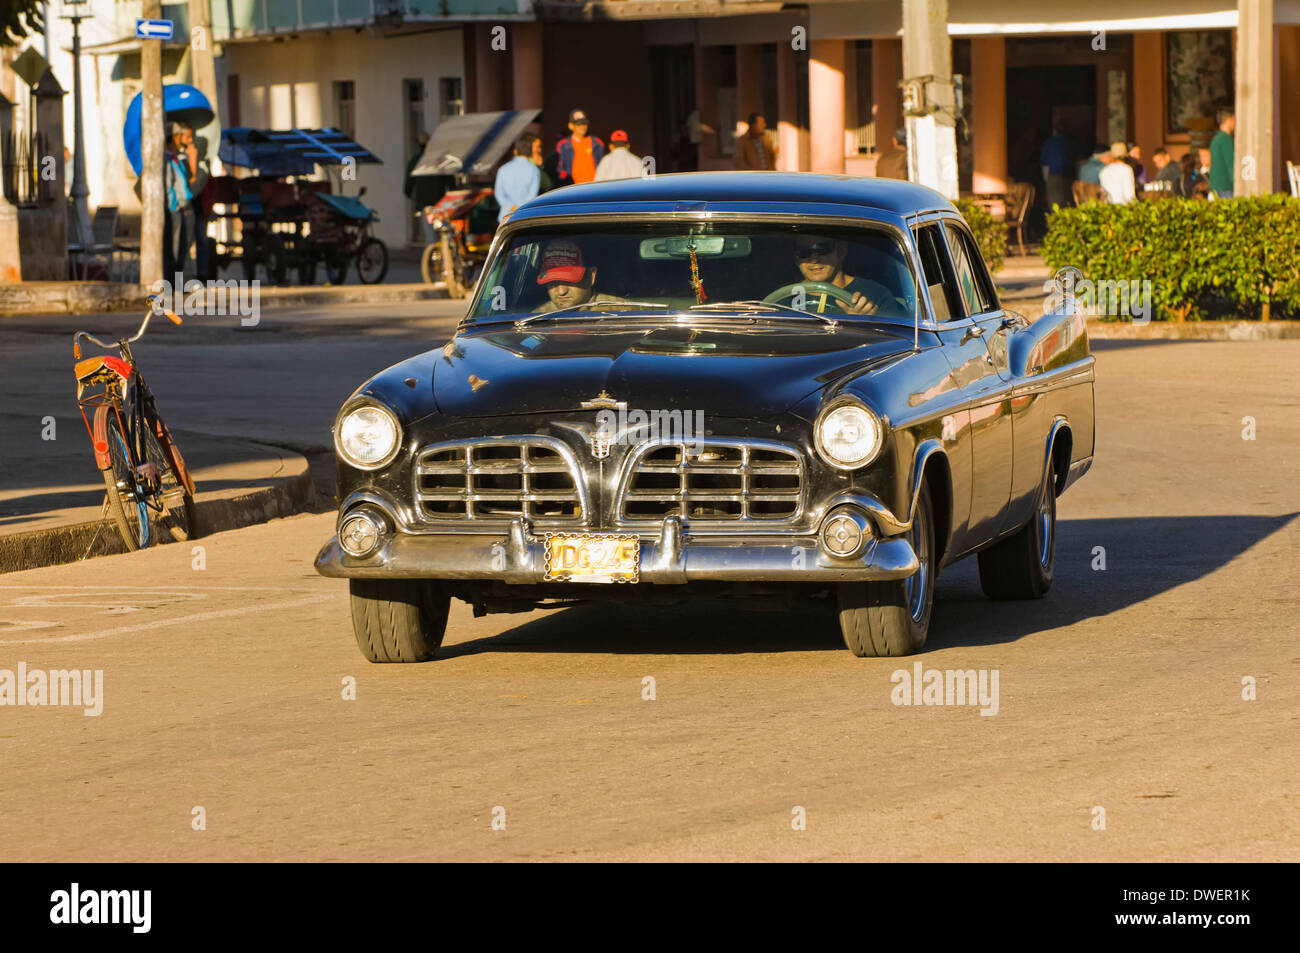 Oldtimer, Remedios - Stock Image